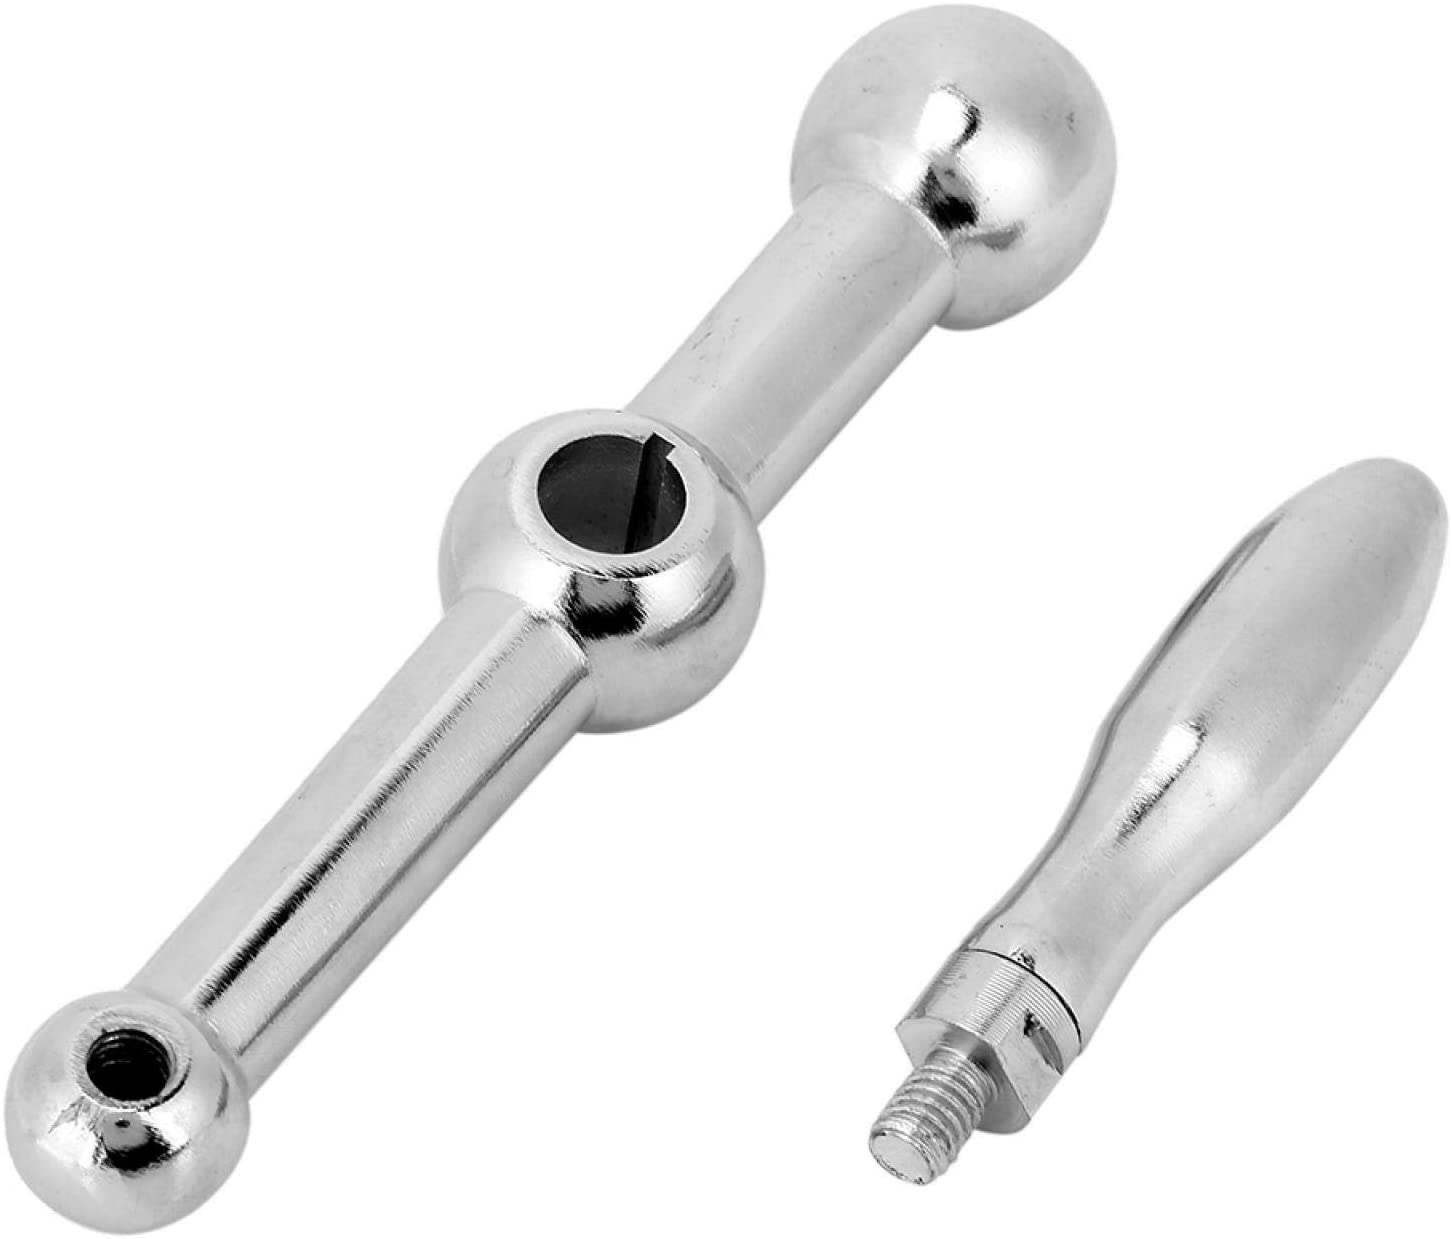 free shipping Kuuleyn D26 Ball Crank Table Shipping included Handle Hole Mac Inner 16mm Diameter